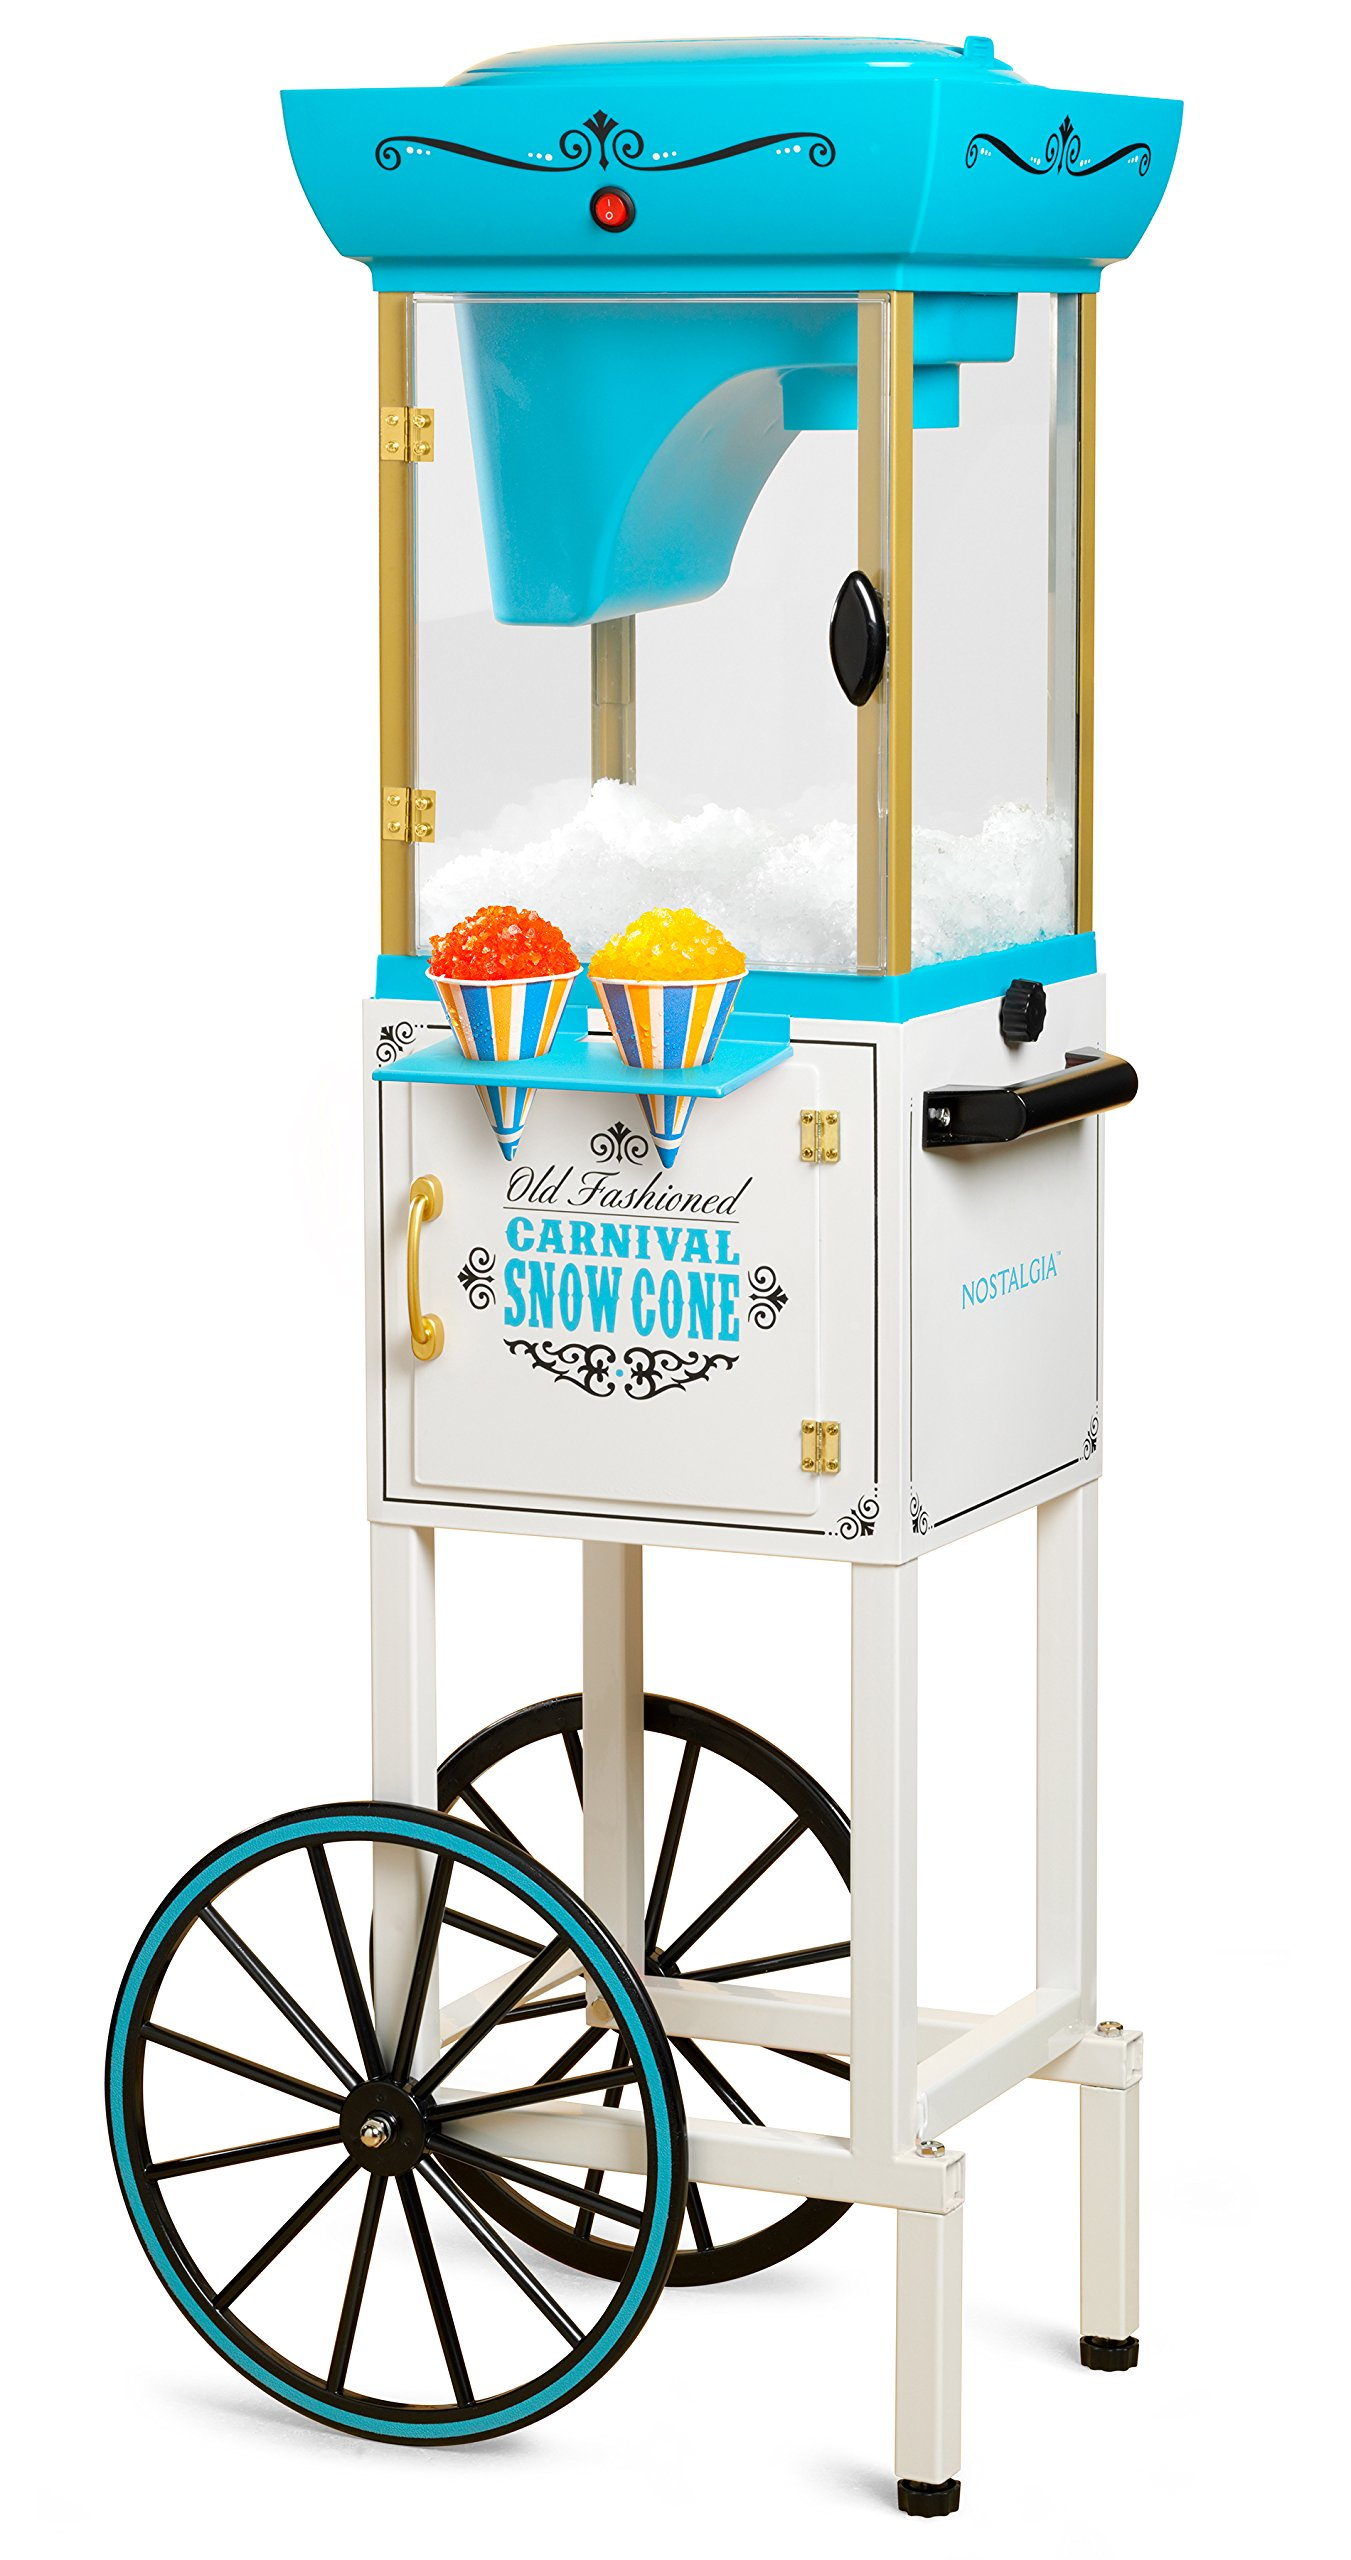 Nostalgia SCC399 Snow Cone Cart - 48 Inches Tall by NOSTALGIA